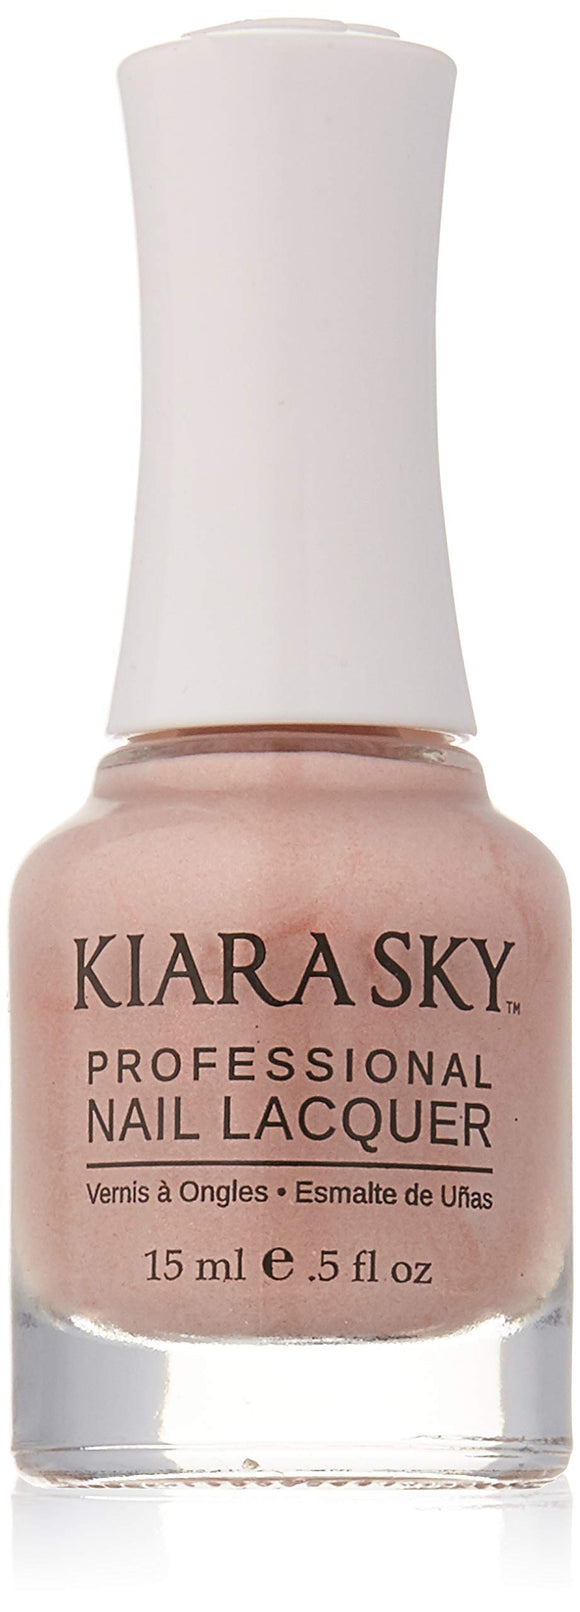 Kiara Sky Nail Lacquer - 15 mL (Feelin Nutty - KSN561)